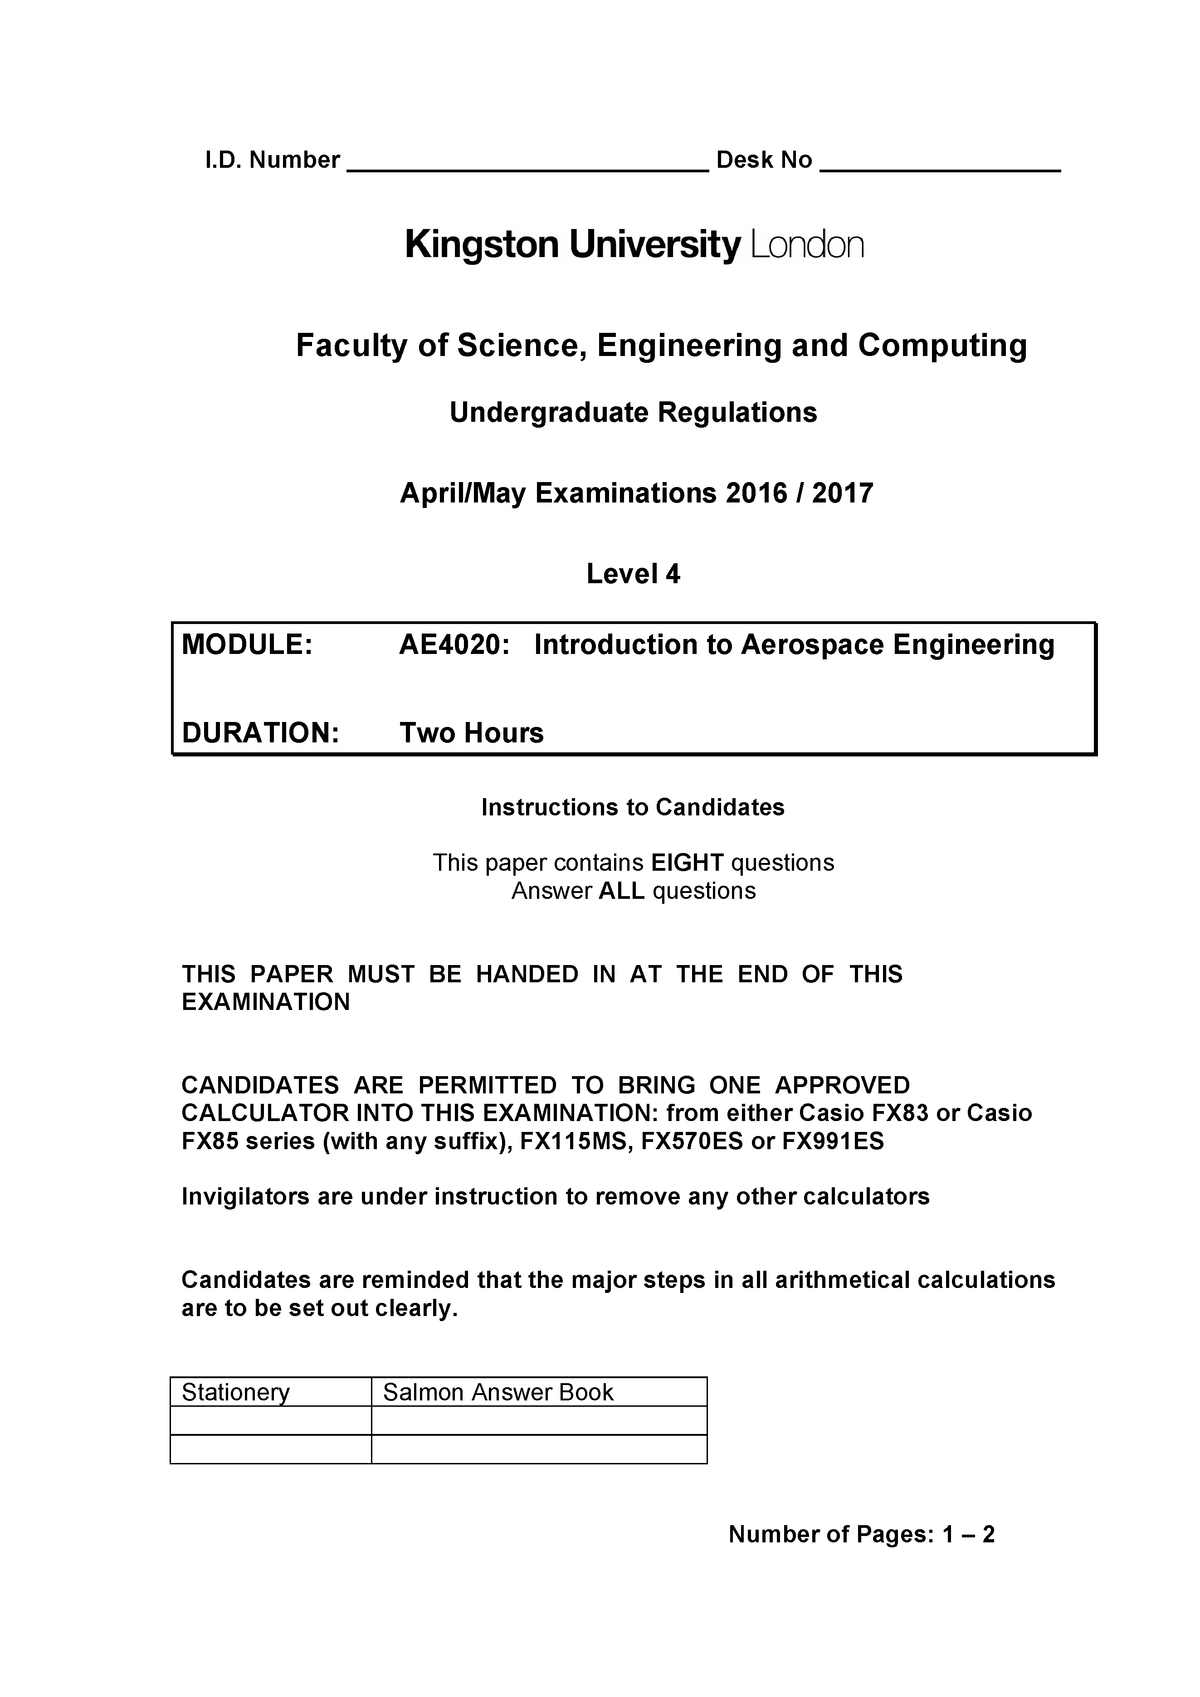 Exam 2017 - AE4020: Introduction to Aerospace Engineering